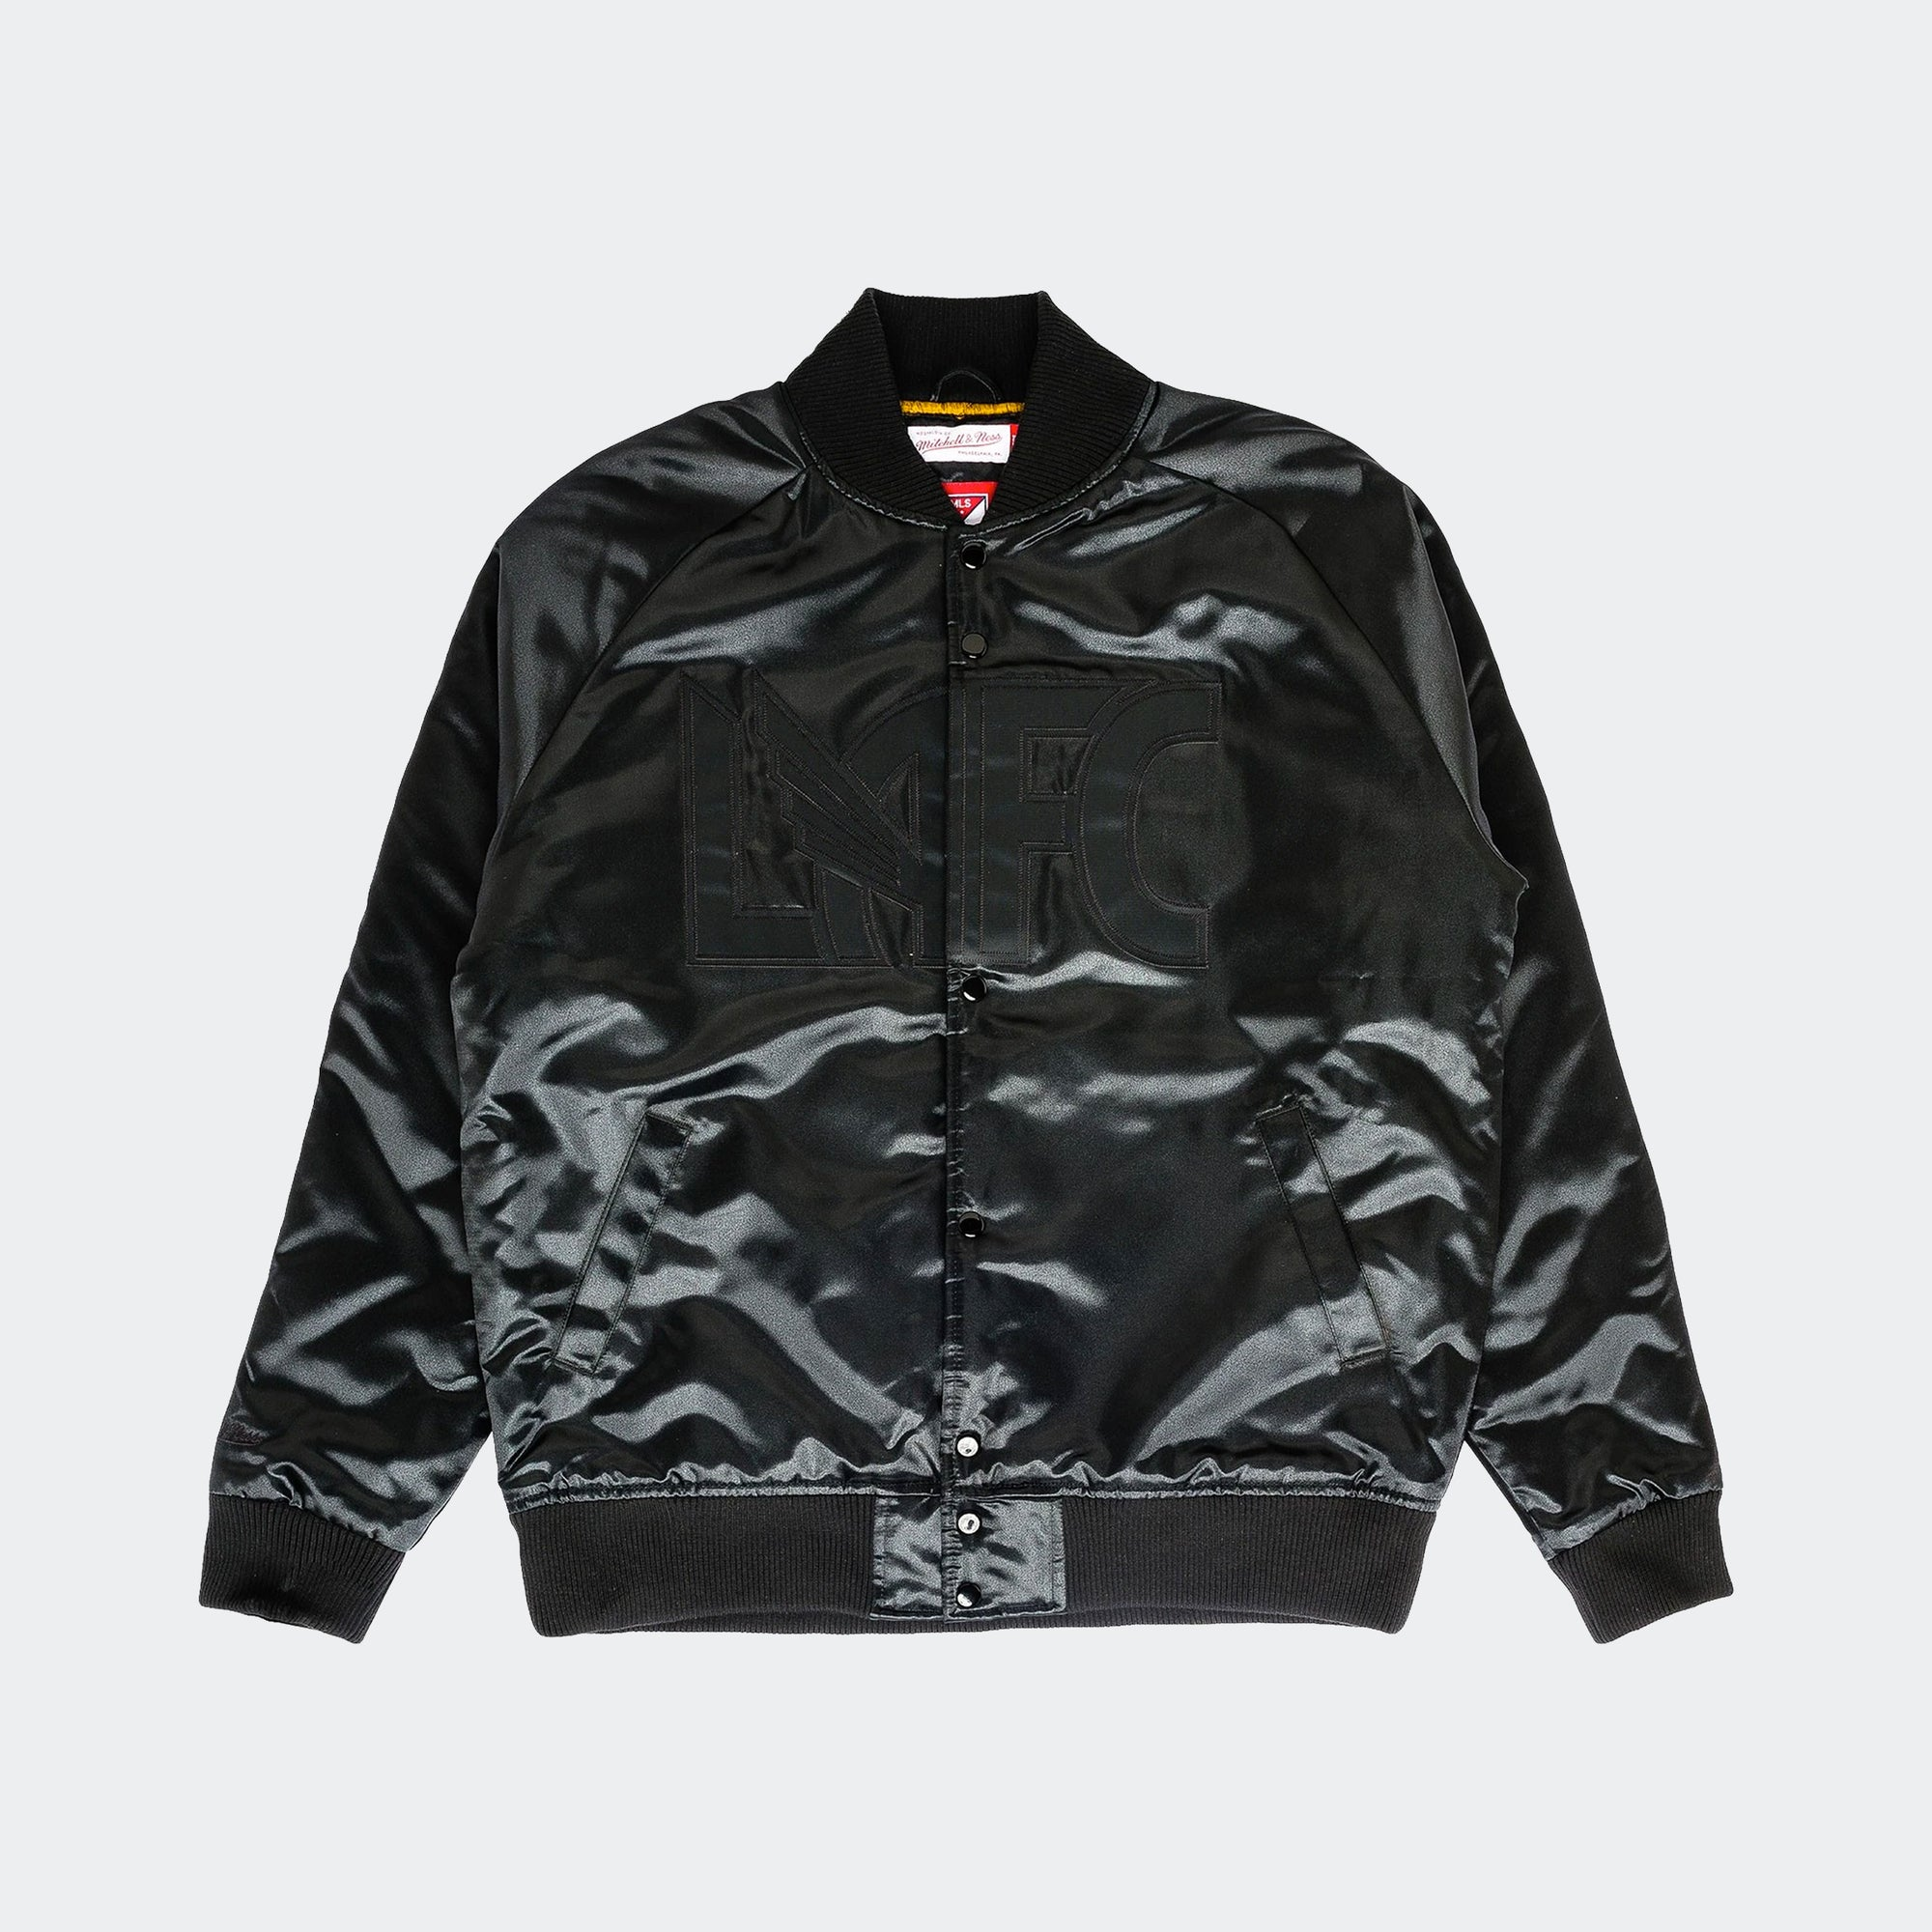 LAFC Midnight Satin Bomber Jacket Niky's Exclusive